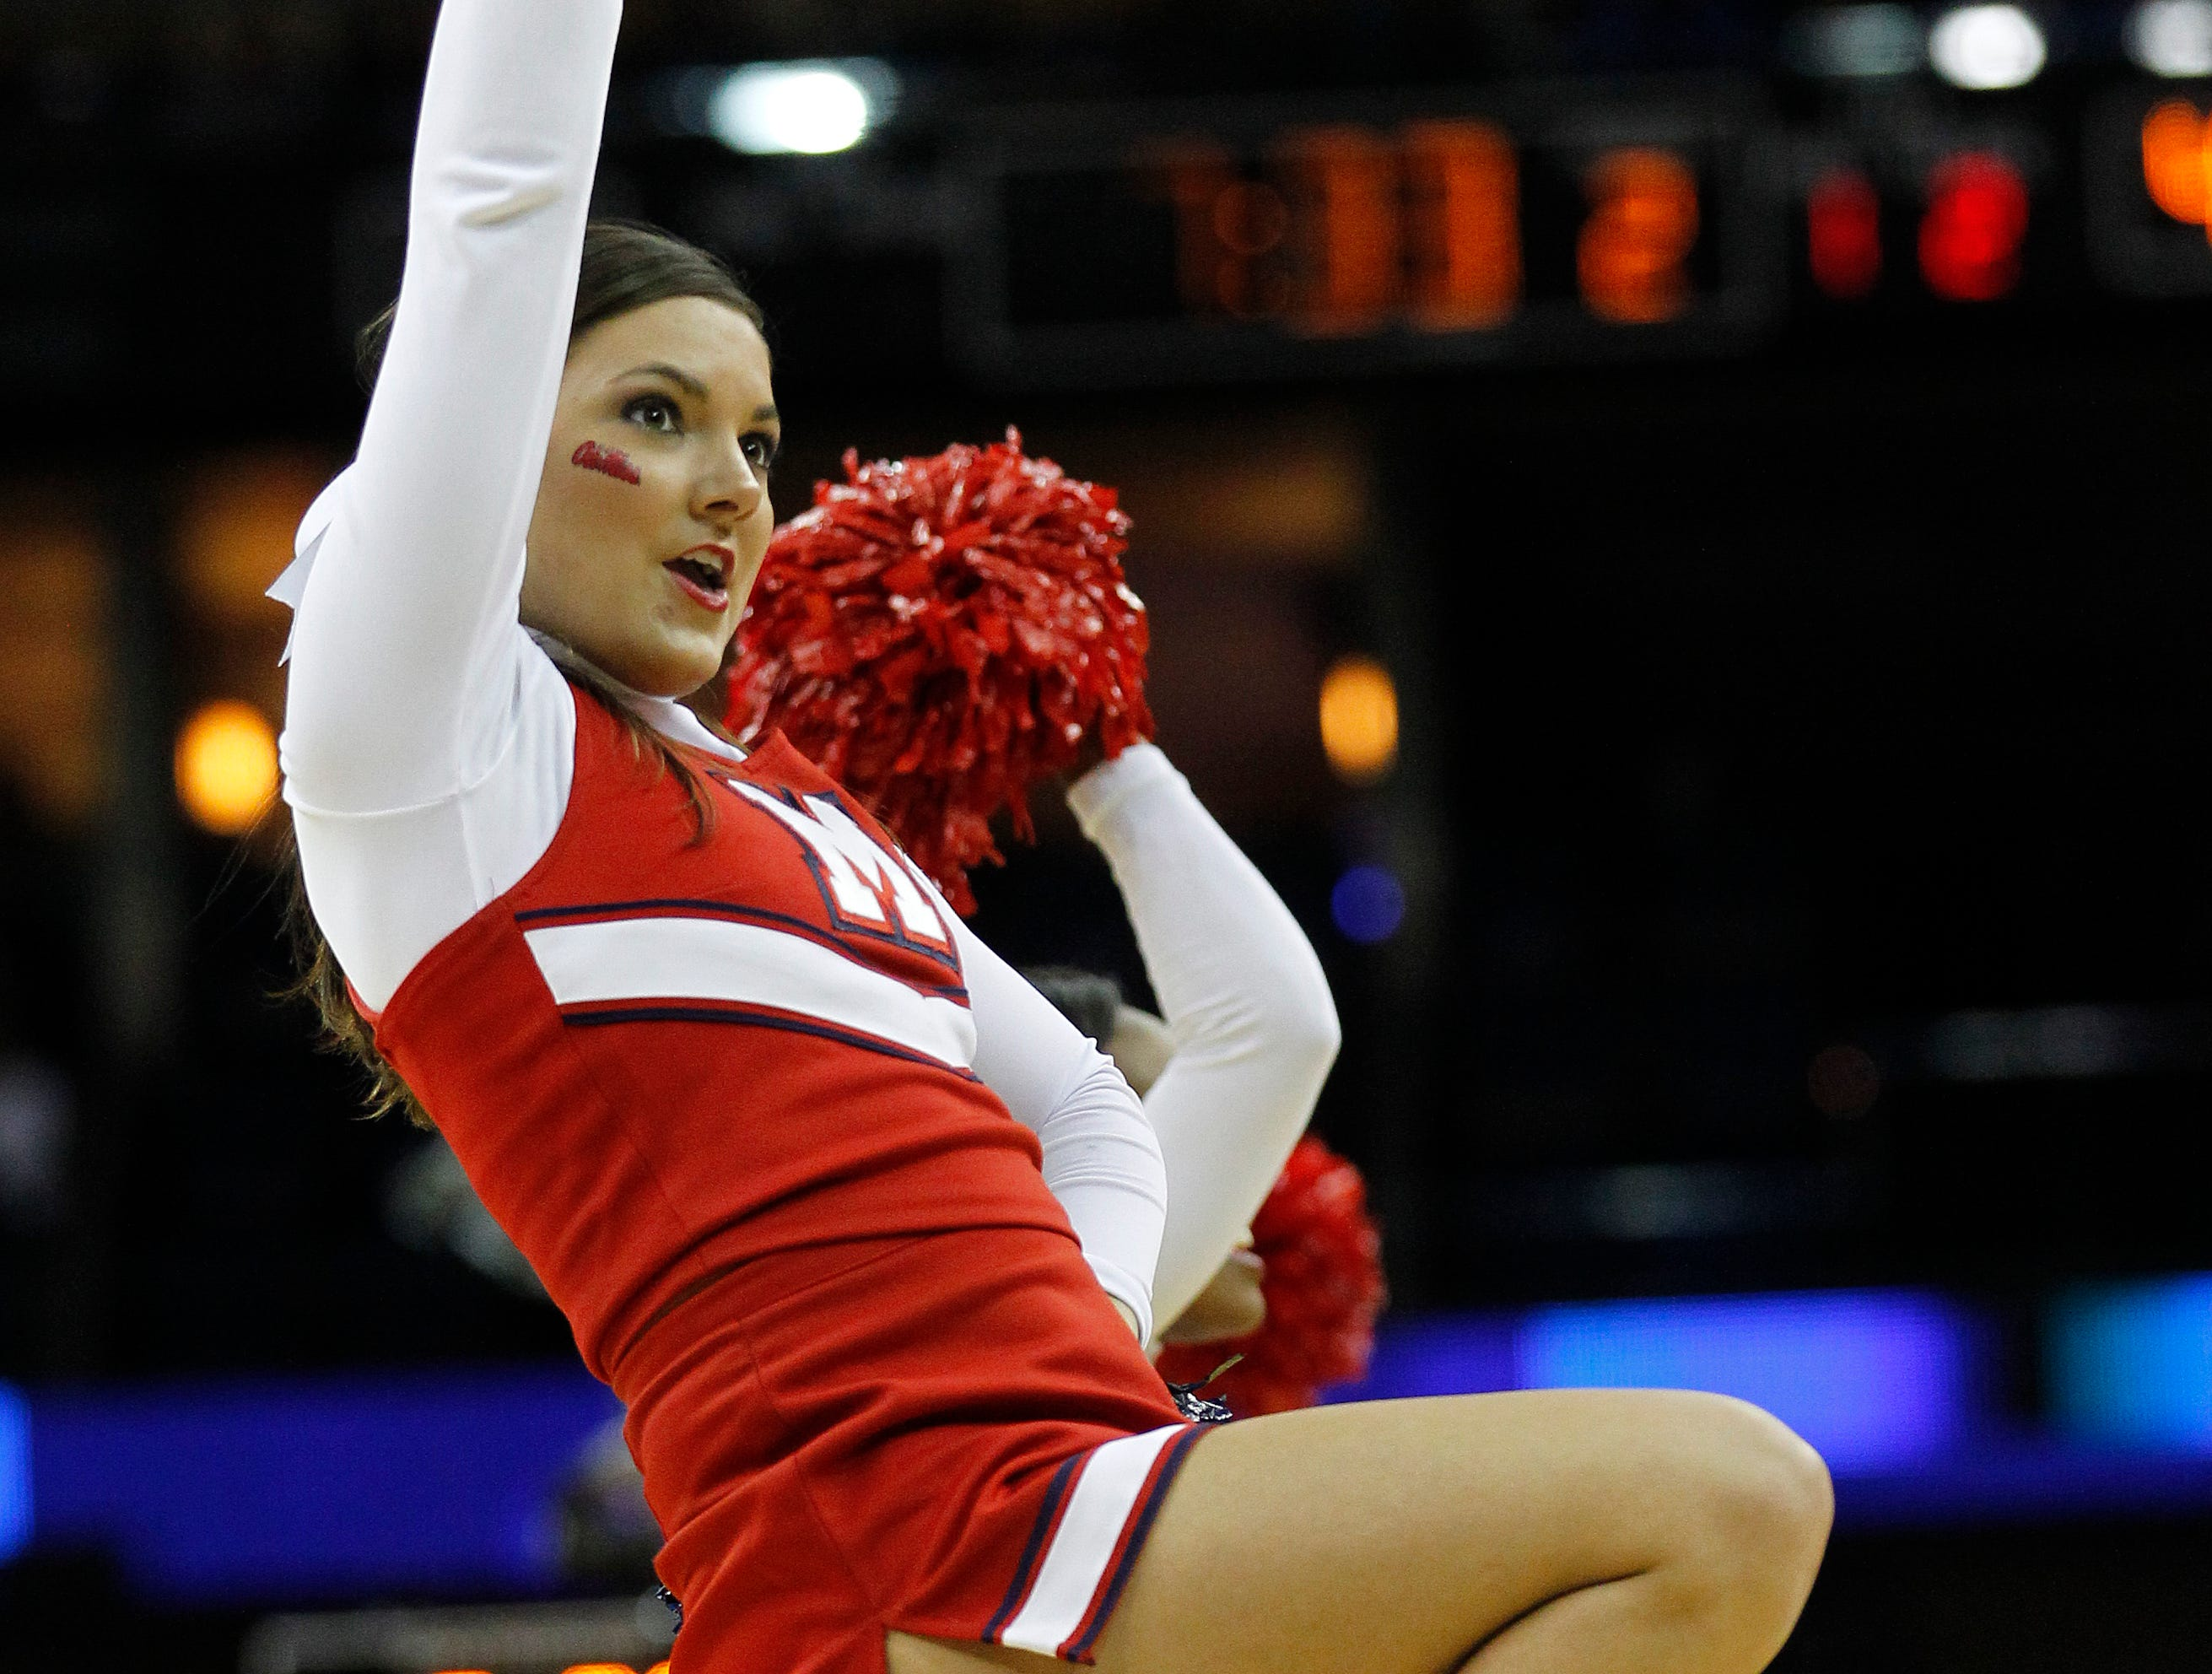 A Mississippi cheerleader performs during the second half of an NCAA college basketball game against Auburn in the first round of the 2012 Southeastern Conference tournament at the New Orleans Arena in New Orleans, Thursday, March 8, 2012. (AP Photo/Gerald Herbert)